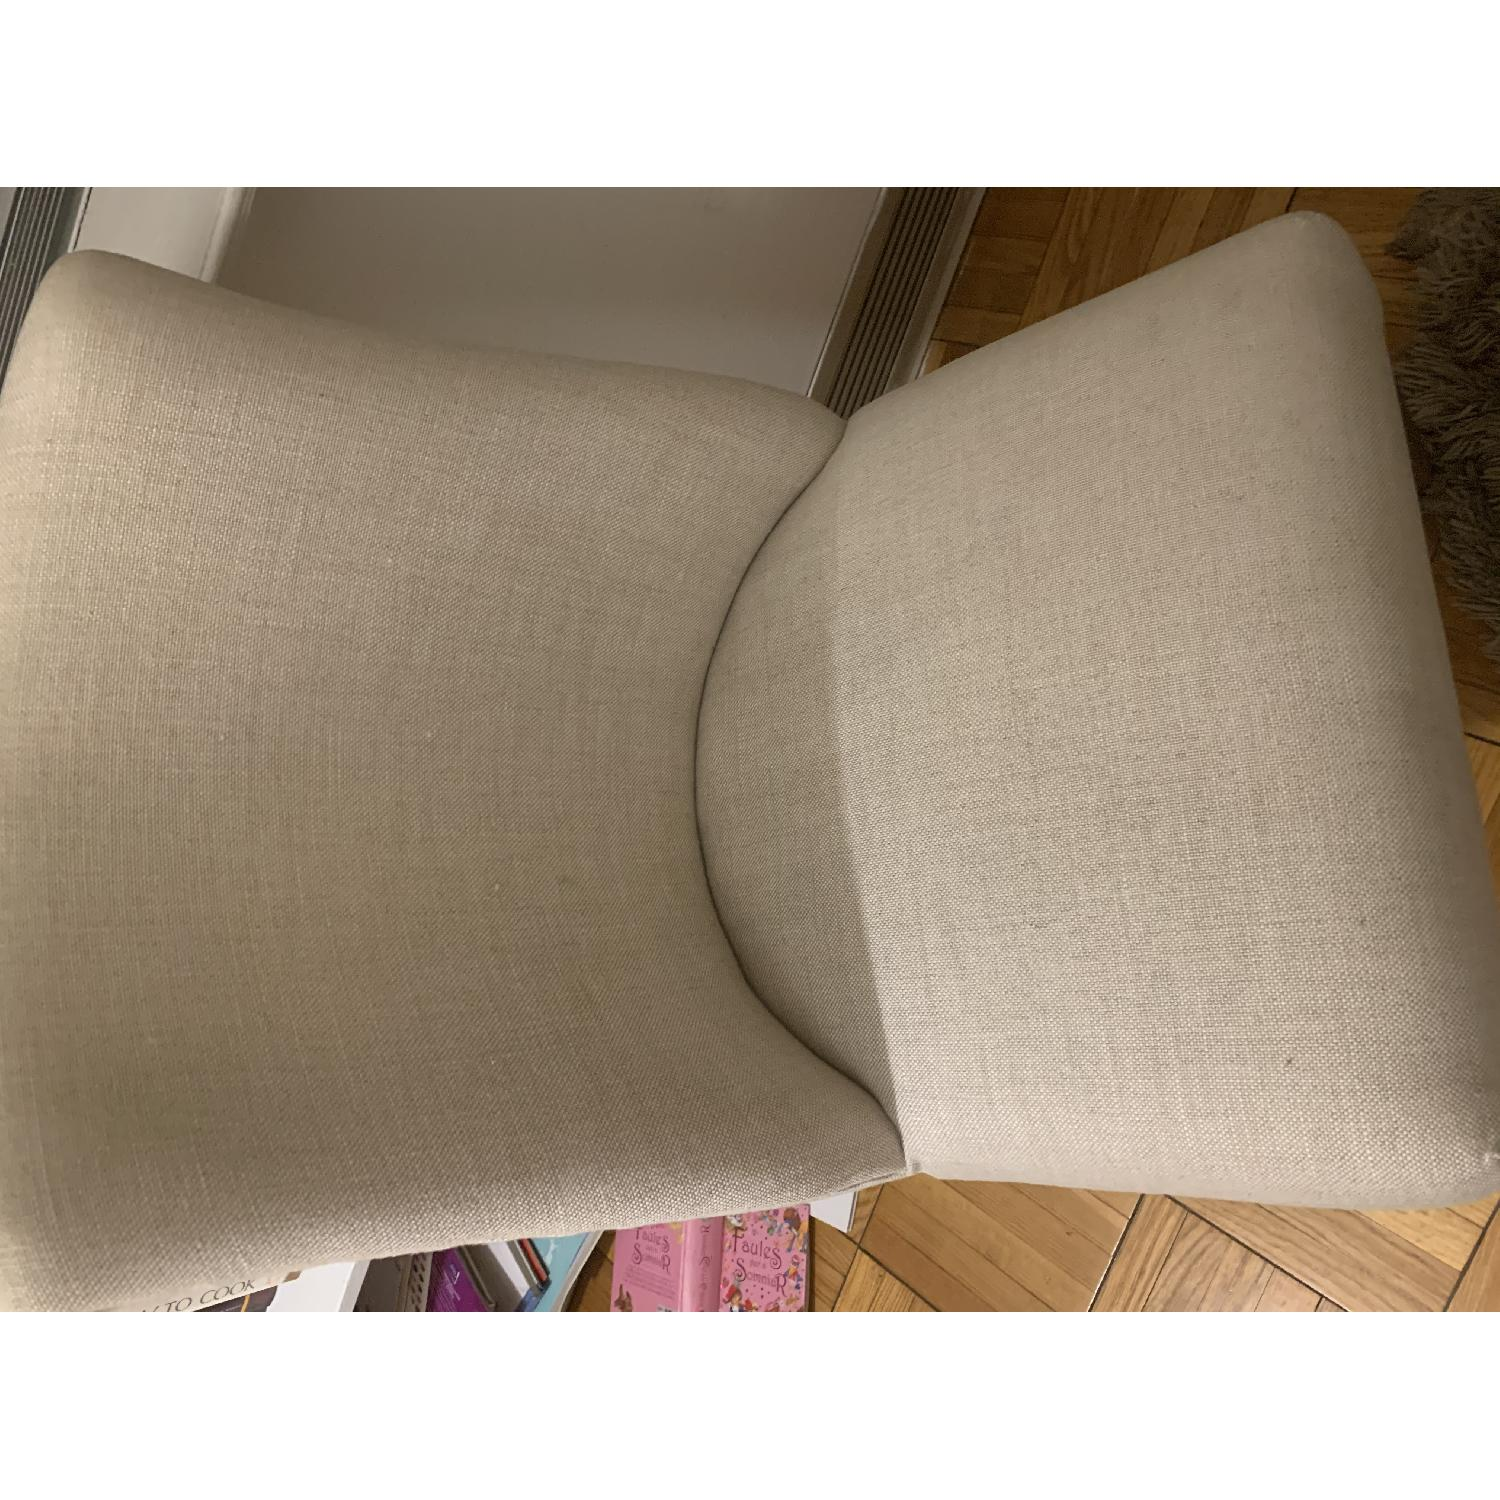 Restoration Hardware 1940S French Barrelback Fabric Chair - image-6